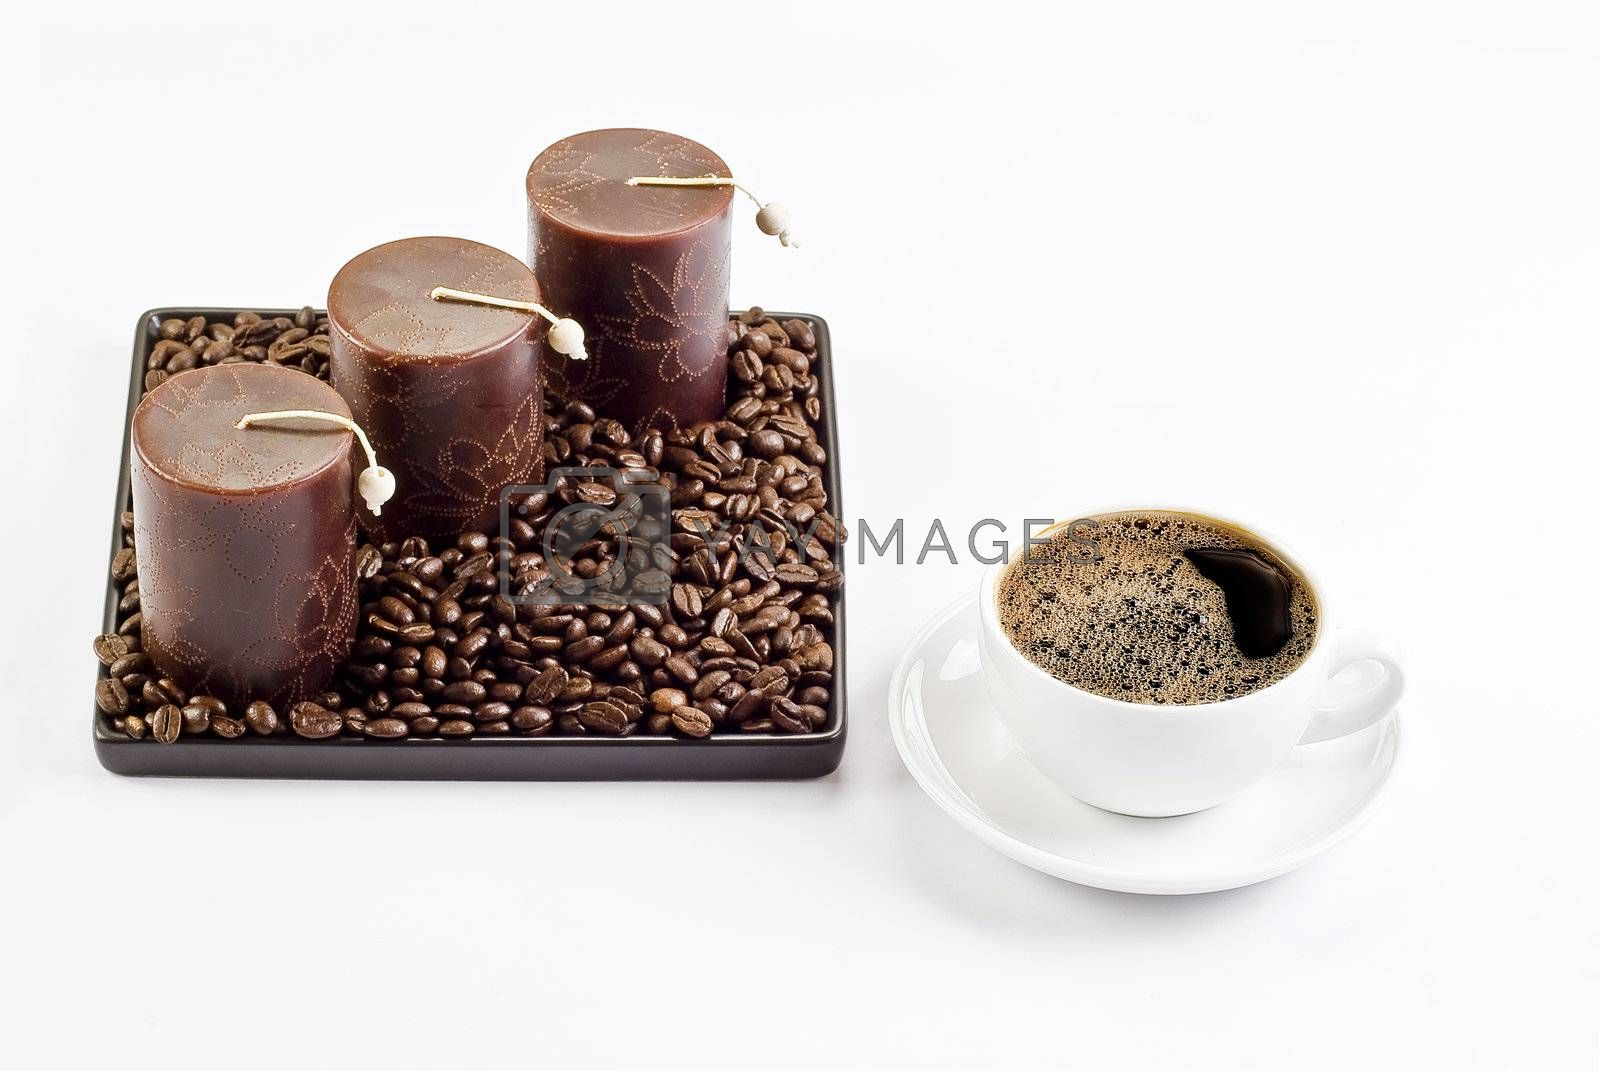 Cup of coffee with coffee beans and candles by caldix